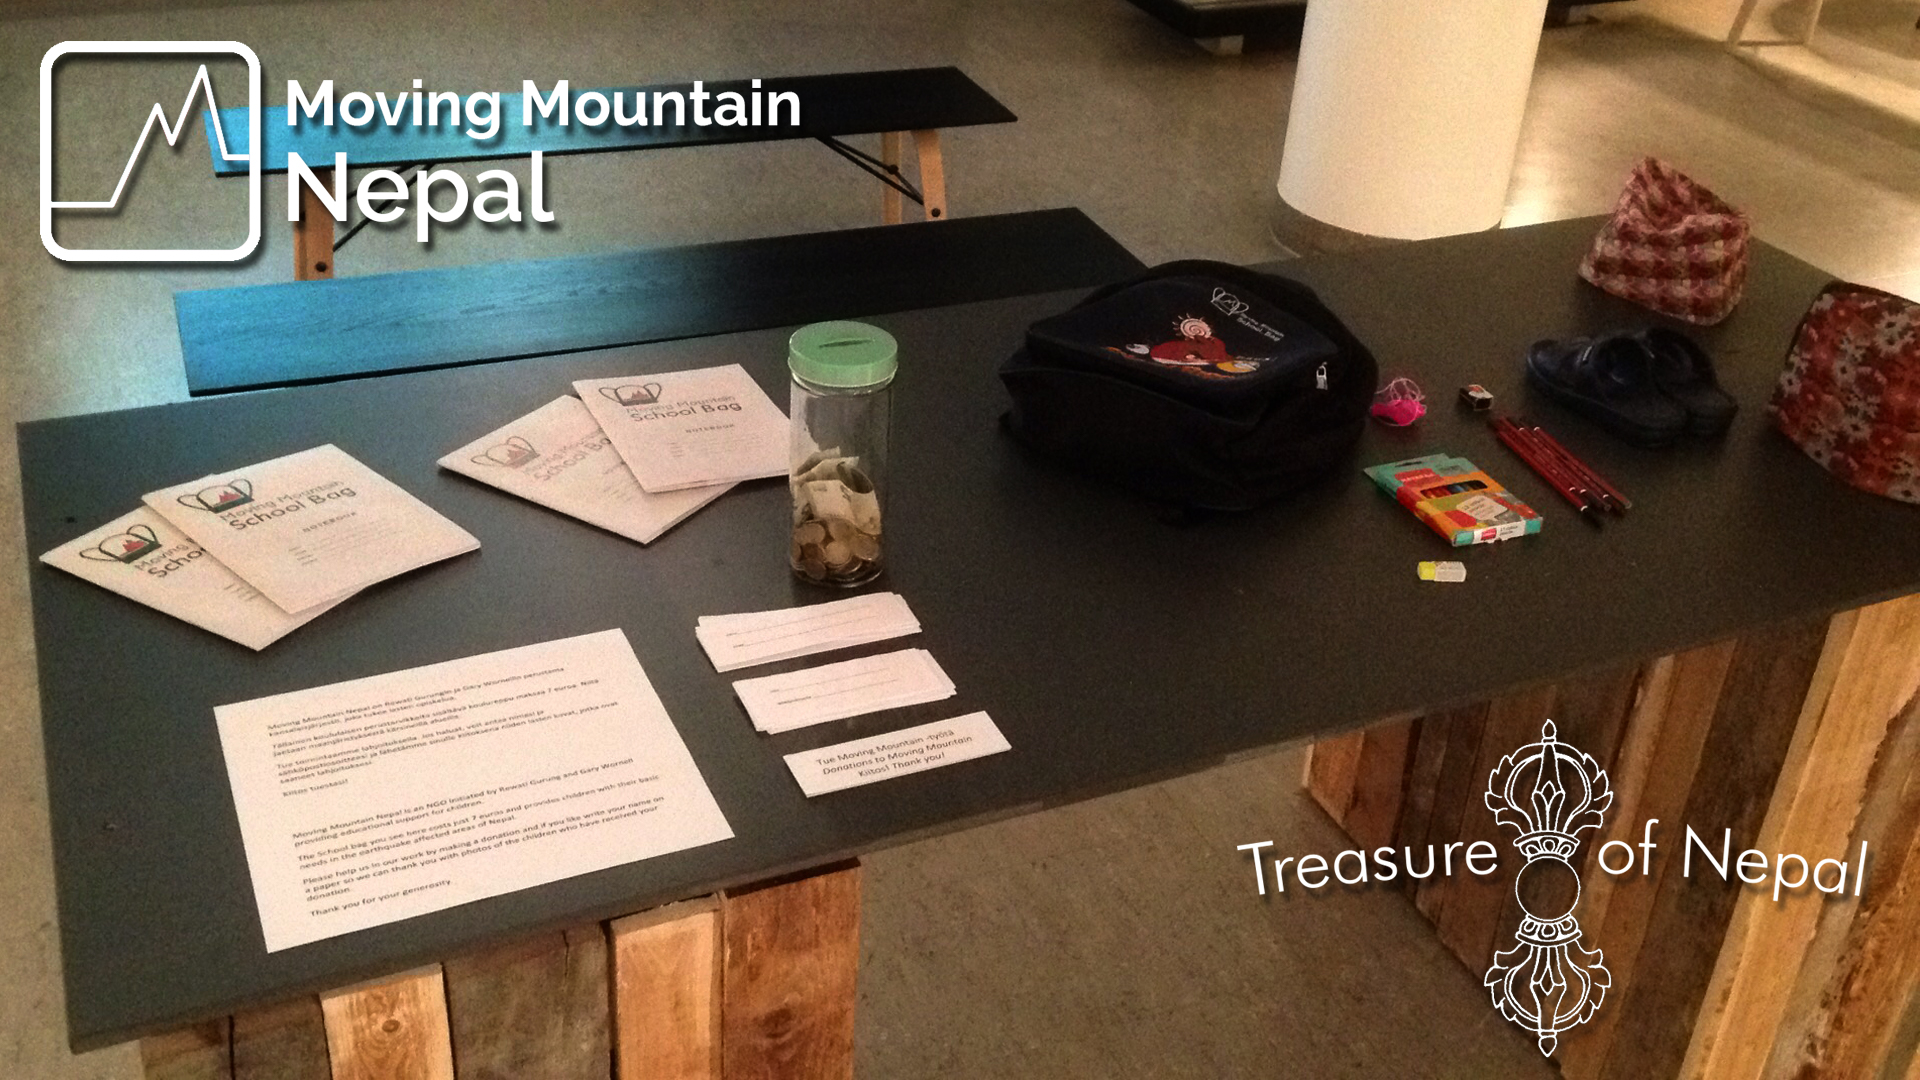 The Moving Mountain Nepal display at Lahti Art Museum where visitors can donate and put their names on papers to add to our list of supporters.